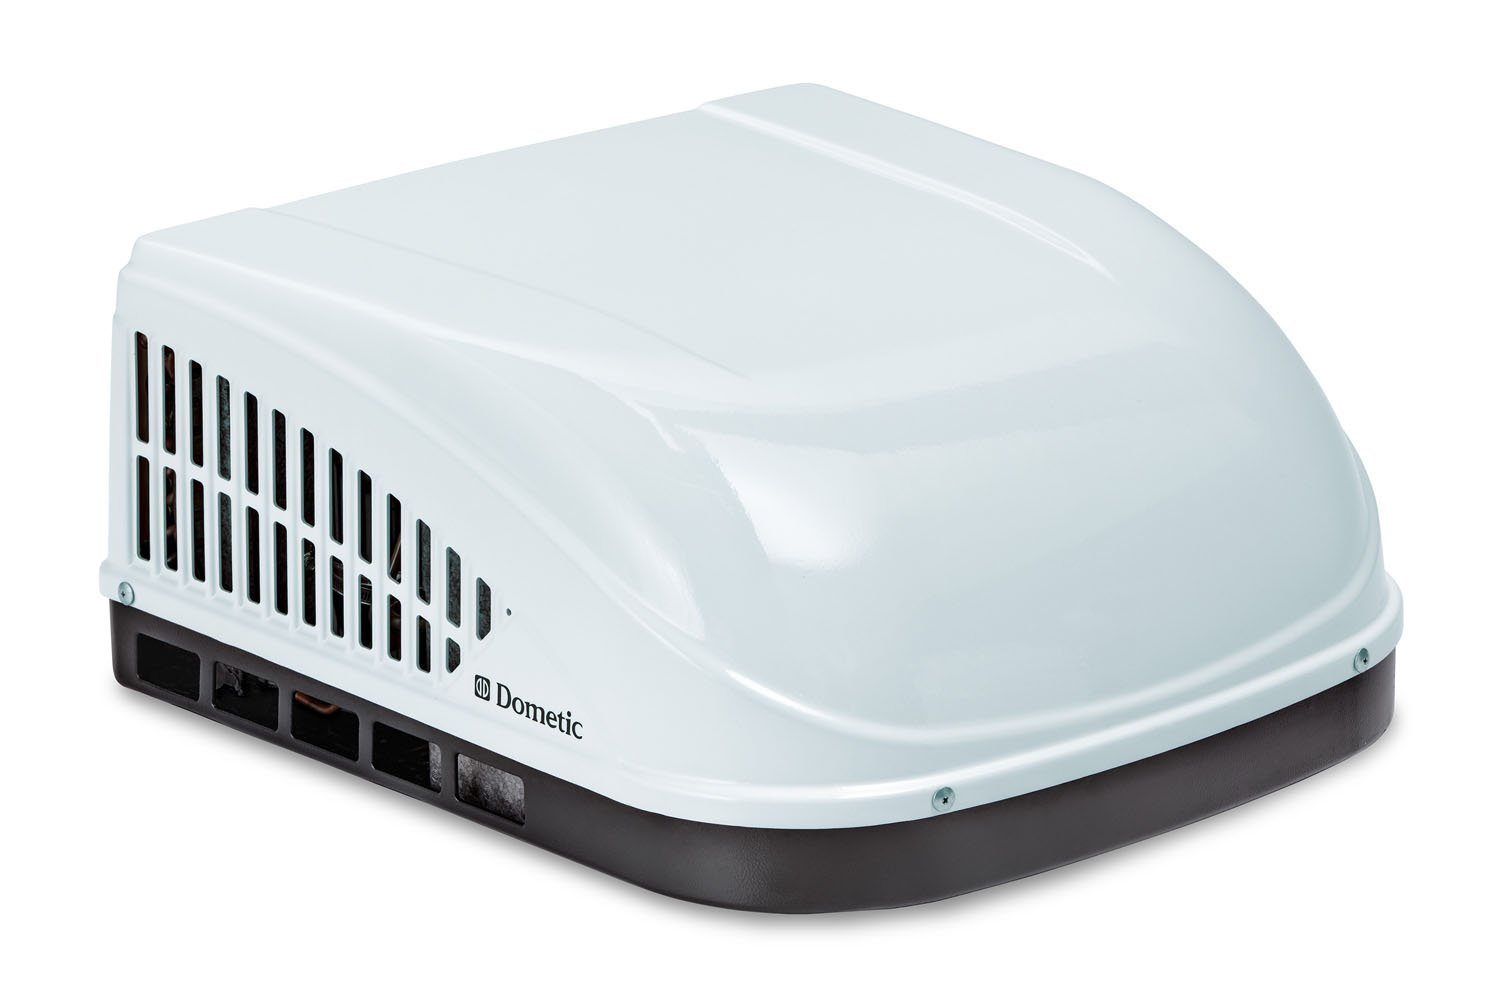 61cv%2BH8LoXL._SL1500_ amazon com dometic b57915 xx1c0 brisk ii polar white air  at soozxer.org